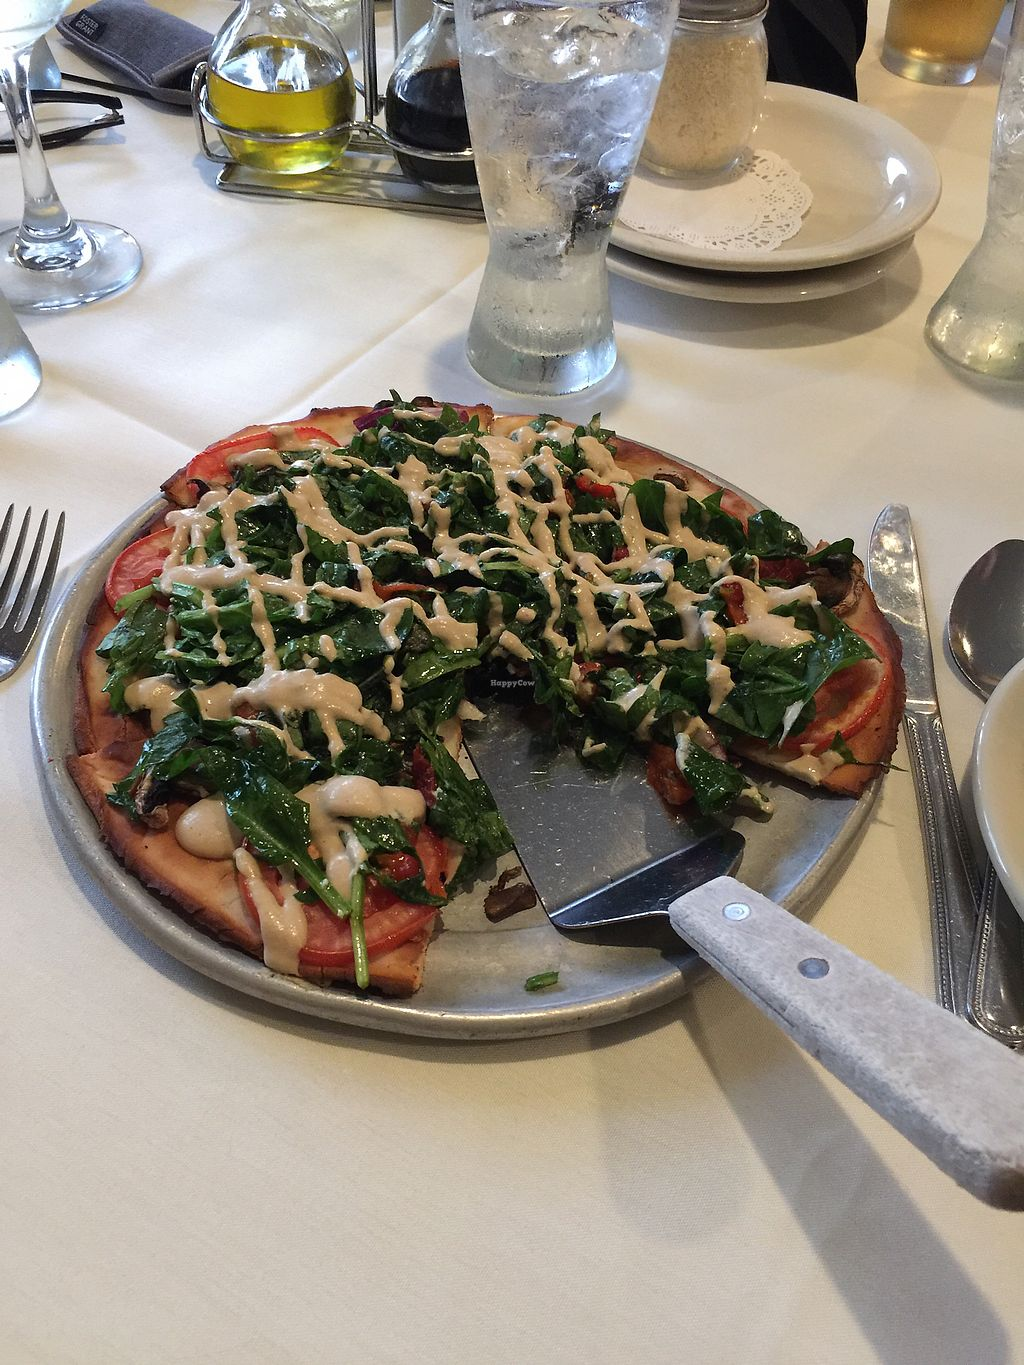 """Photo of Jack's Restaurant  by <a href=""""/members/profile/AngieLupusLife"""">AngieLupusLife</a> <br/>Vegan pizza  <br/> September 9, 2017  - <a href='/contact/abuse/image/95081/302272'>Report</a>"""